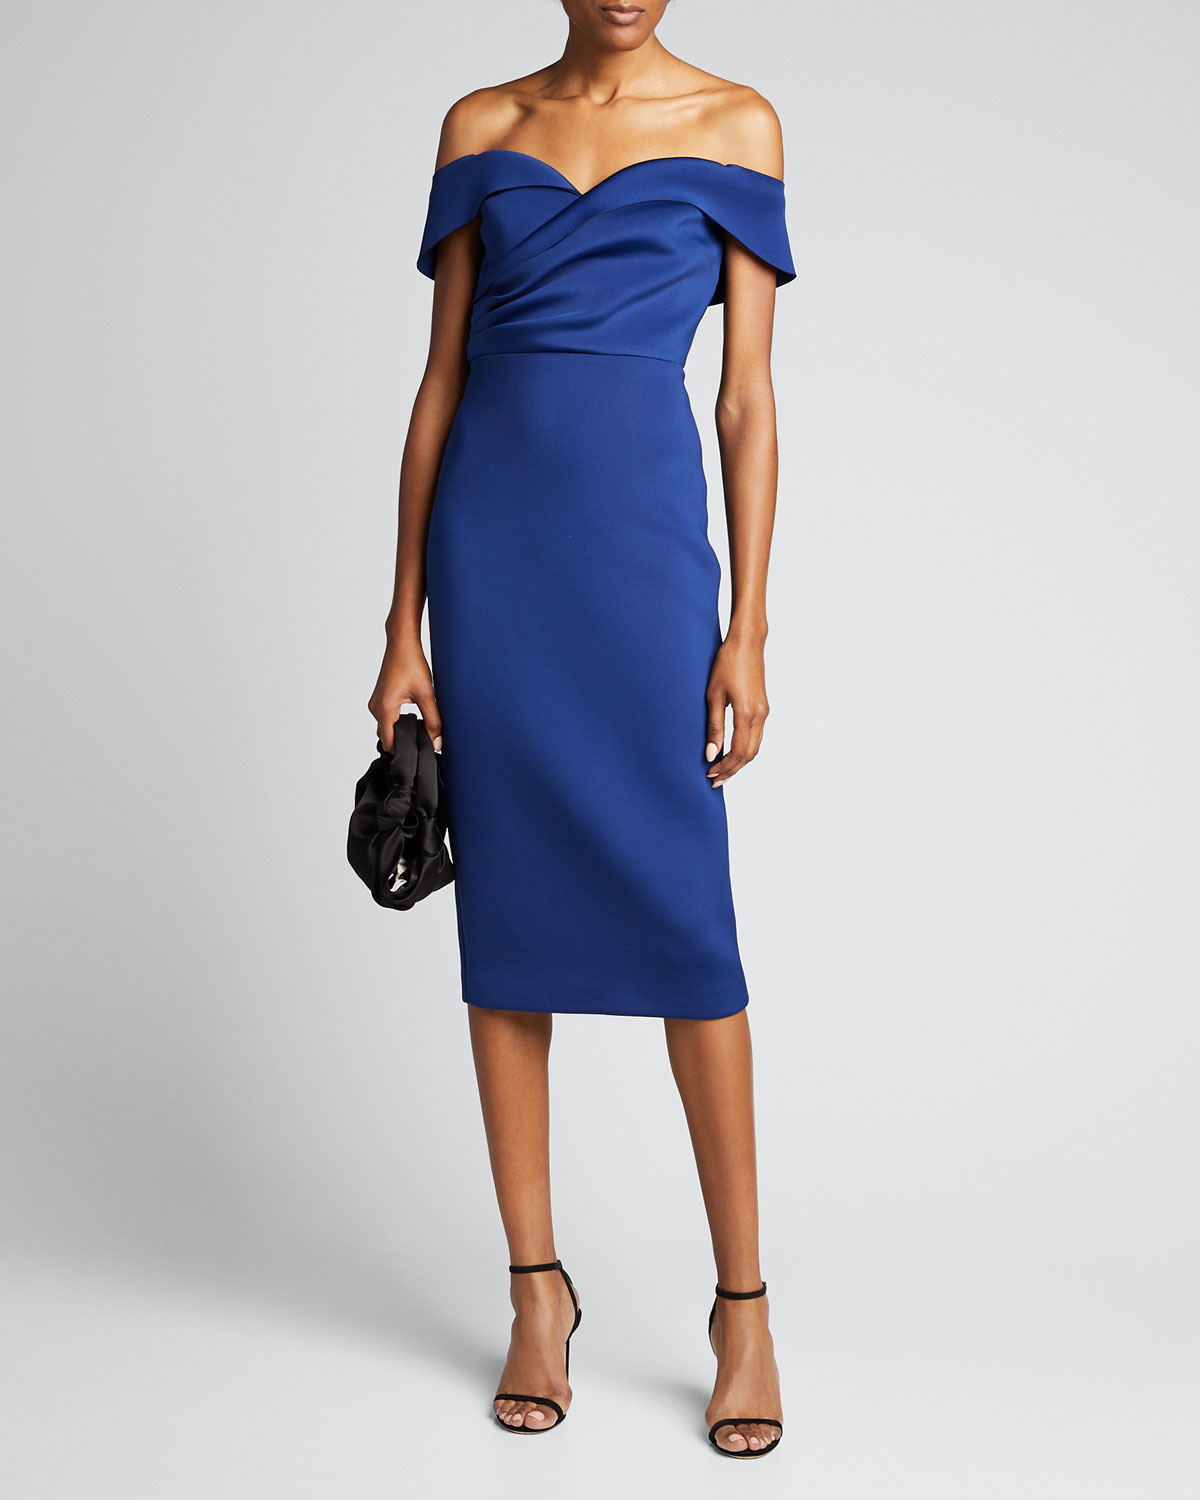 Badgley Mischka Dresses OFF-THE-SHOULDER DRAPED TOP SCUBA DRESS